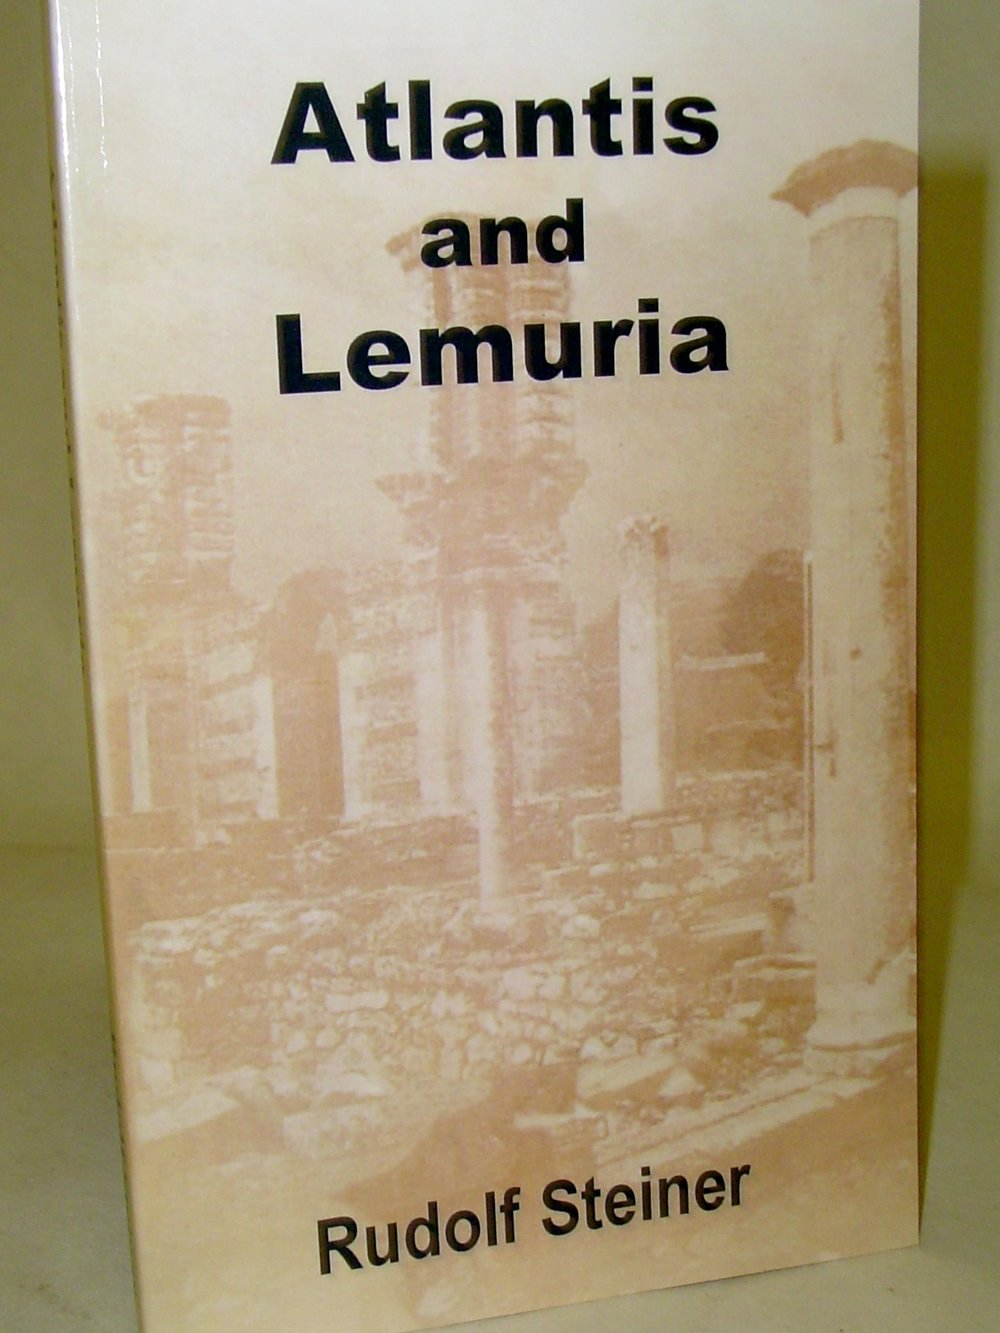 Atlantis & Lemuria  By Rudolf Steiner  $20  Plato and many others have written of the continent of Atlantis that lay between Europe and America. Rather than try to prove that Atlantis exists, which many other writers have done before, Rudolf explores the spiritual condition and inner nature of those who may have lived there.   Read More on eBay